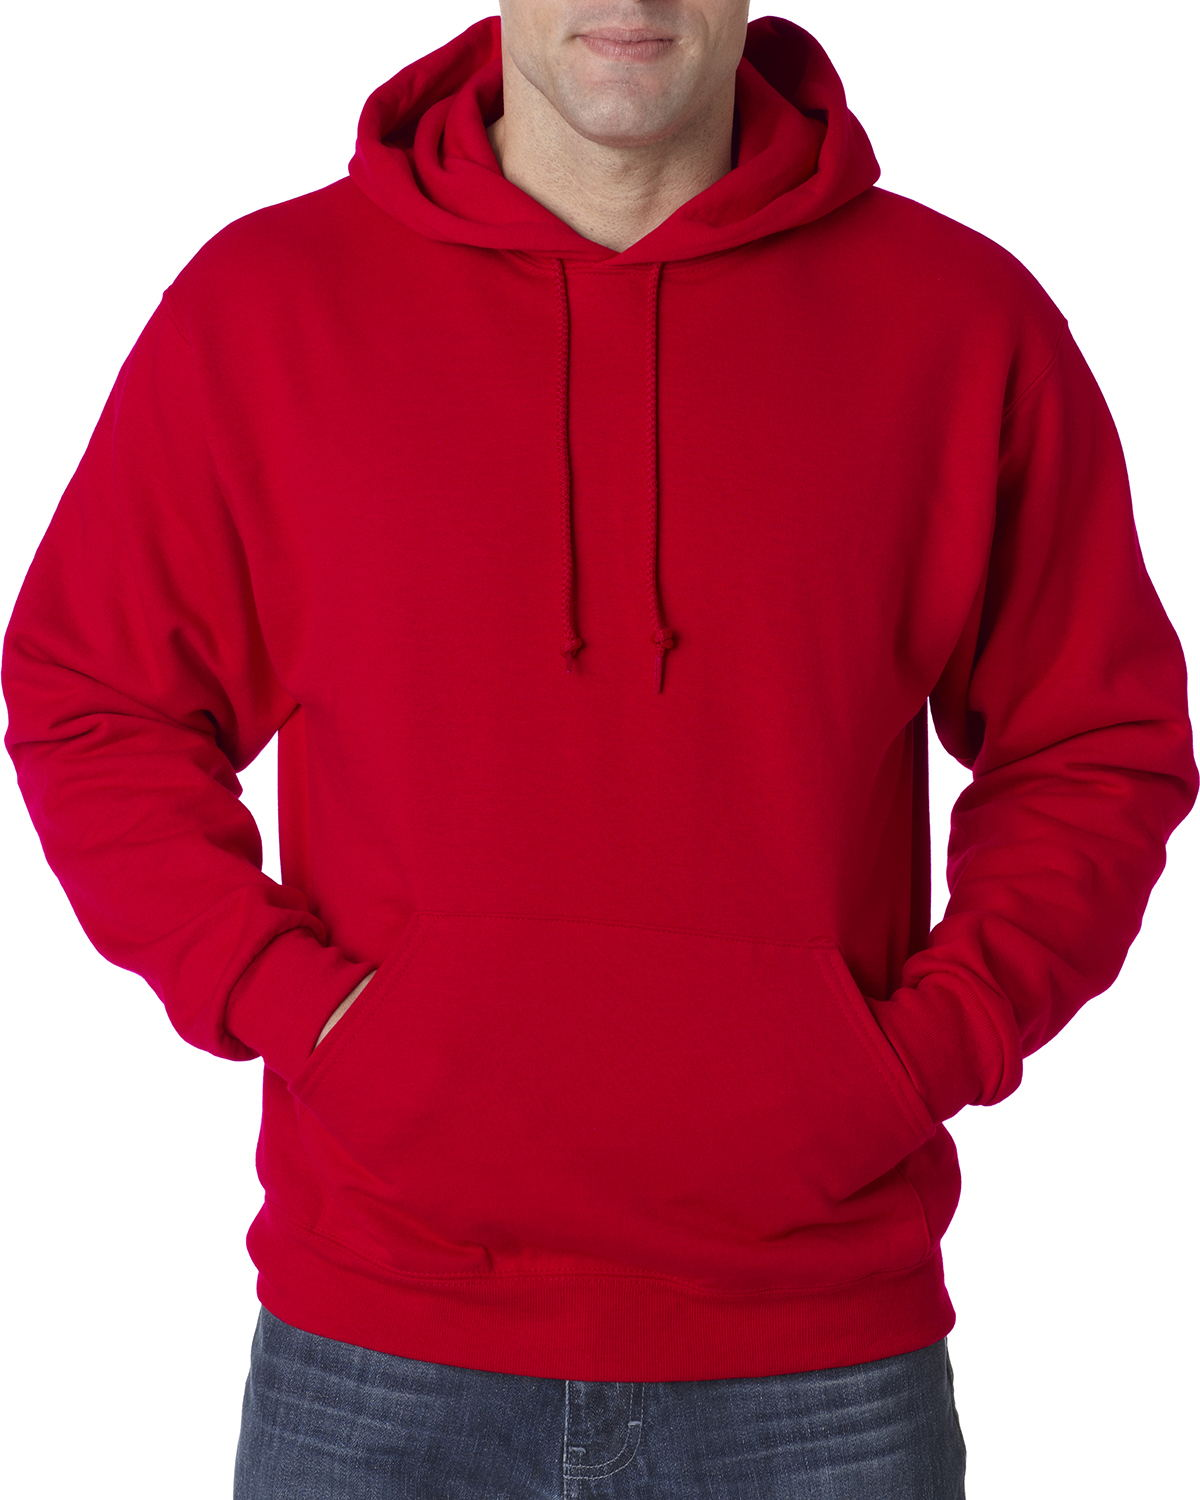 JERZEES 50/50 Hooded Pullover Sweatshirt Tall Sizes ...